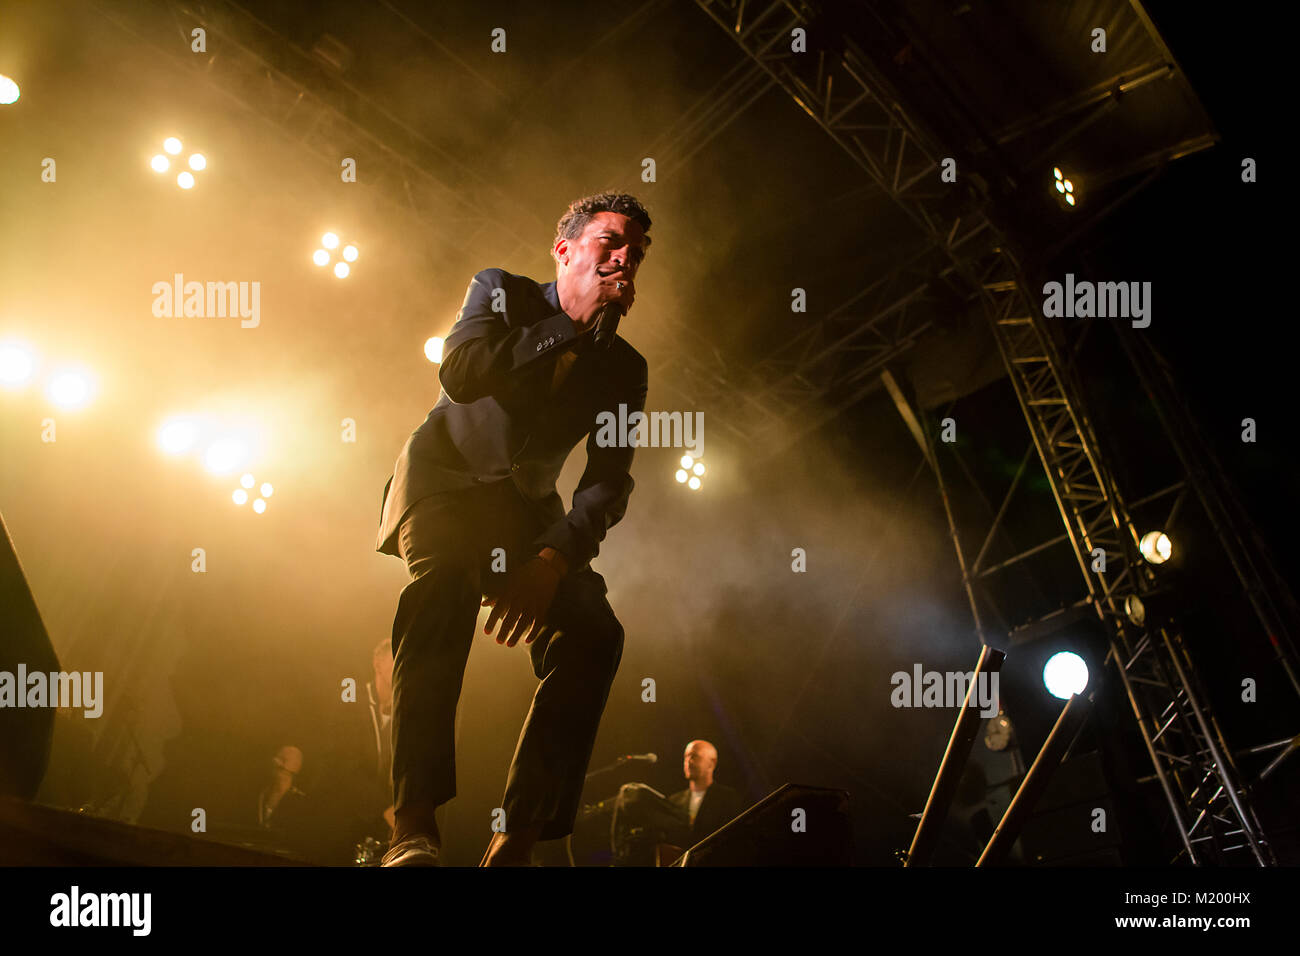 The Swedish rapper and reggae singer Timbuktu performs a